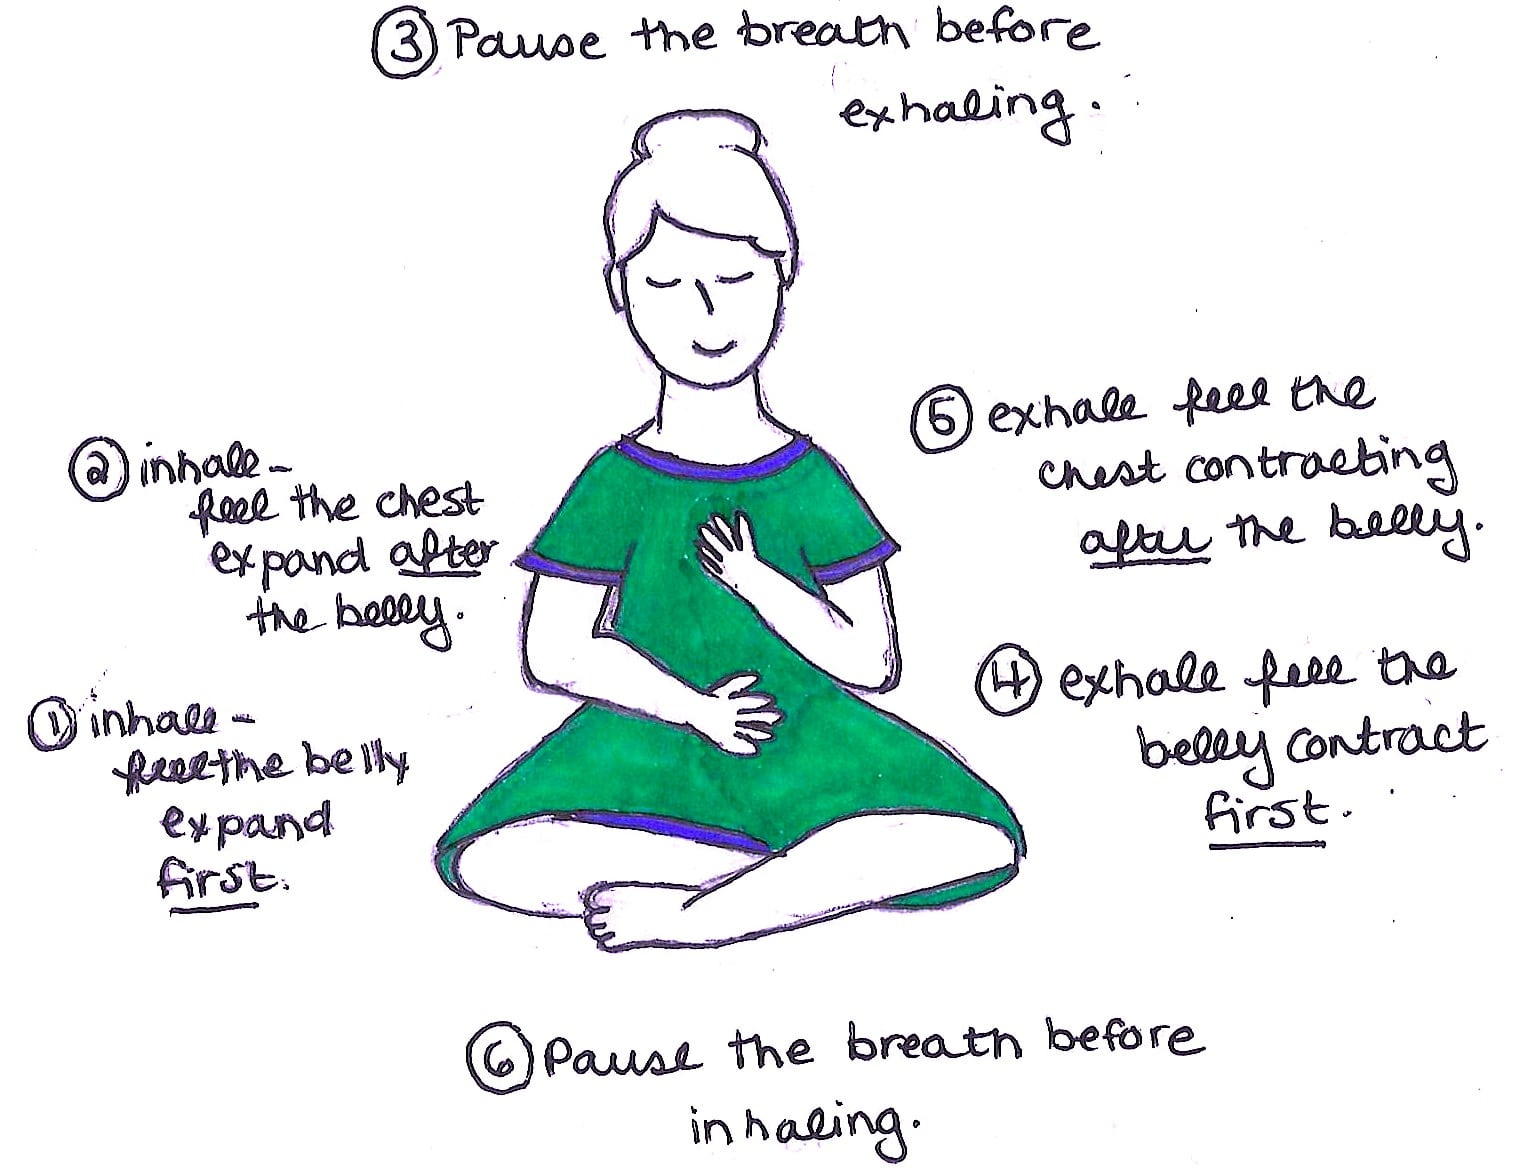 How to breath properly and improve your surfing